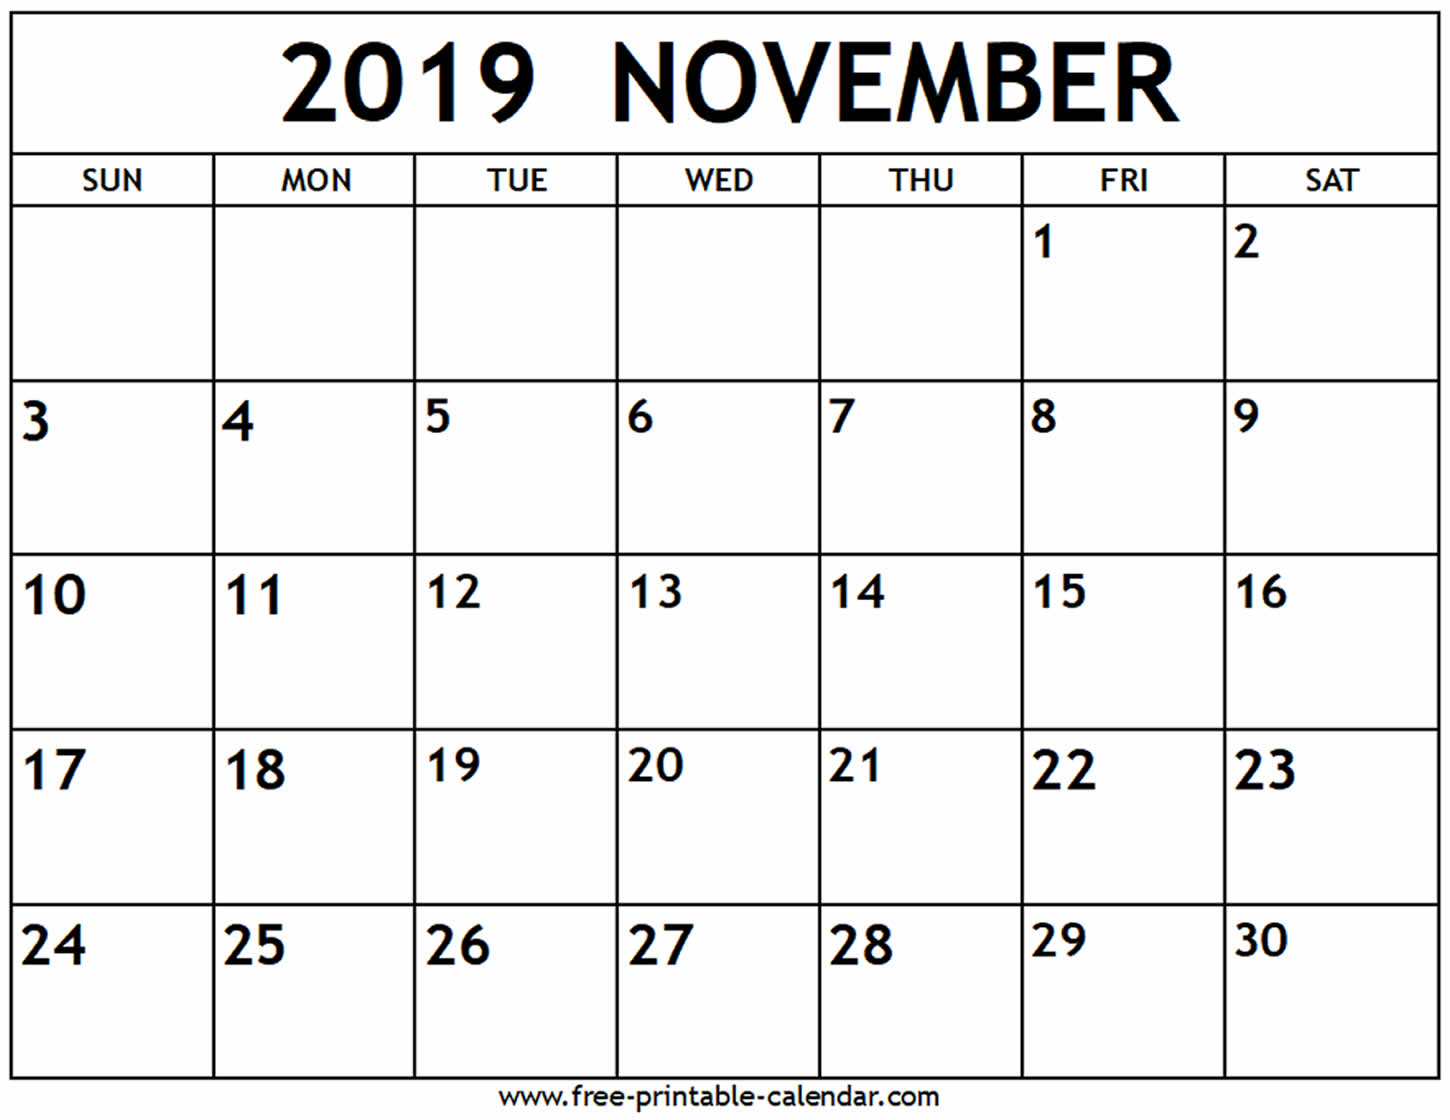 November 2019 Calendar - Free-Printable-Calendar with Blank Calendar Template November